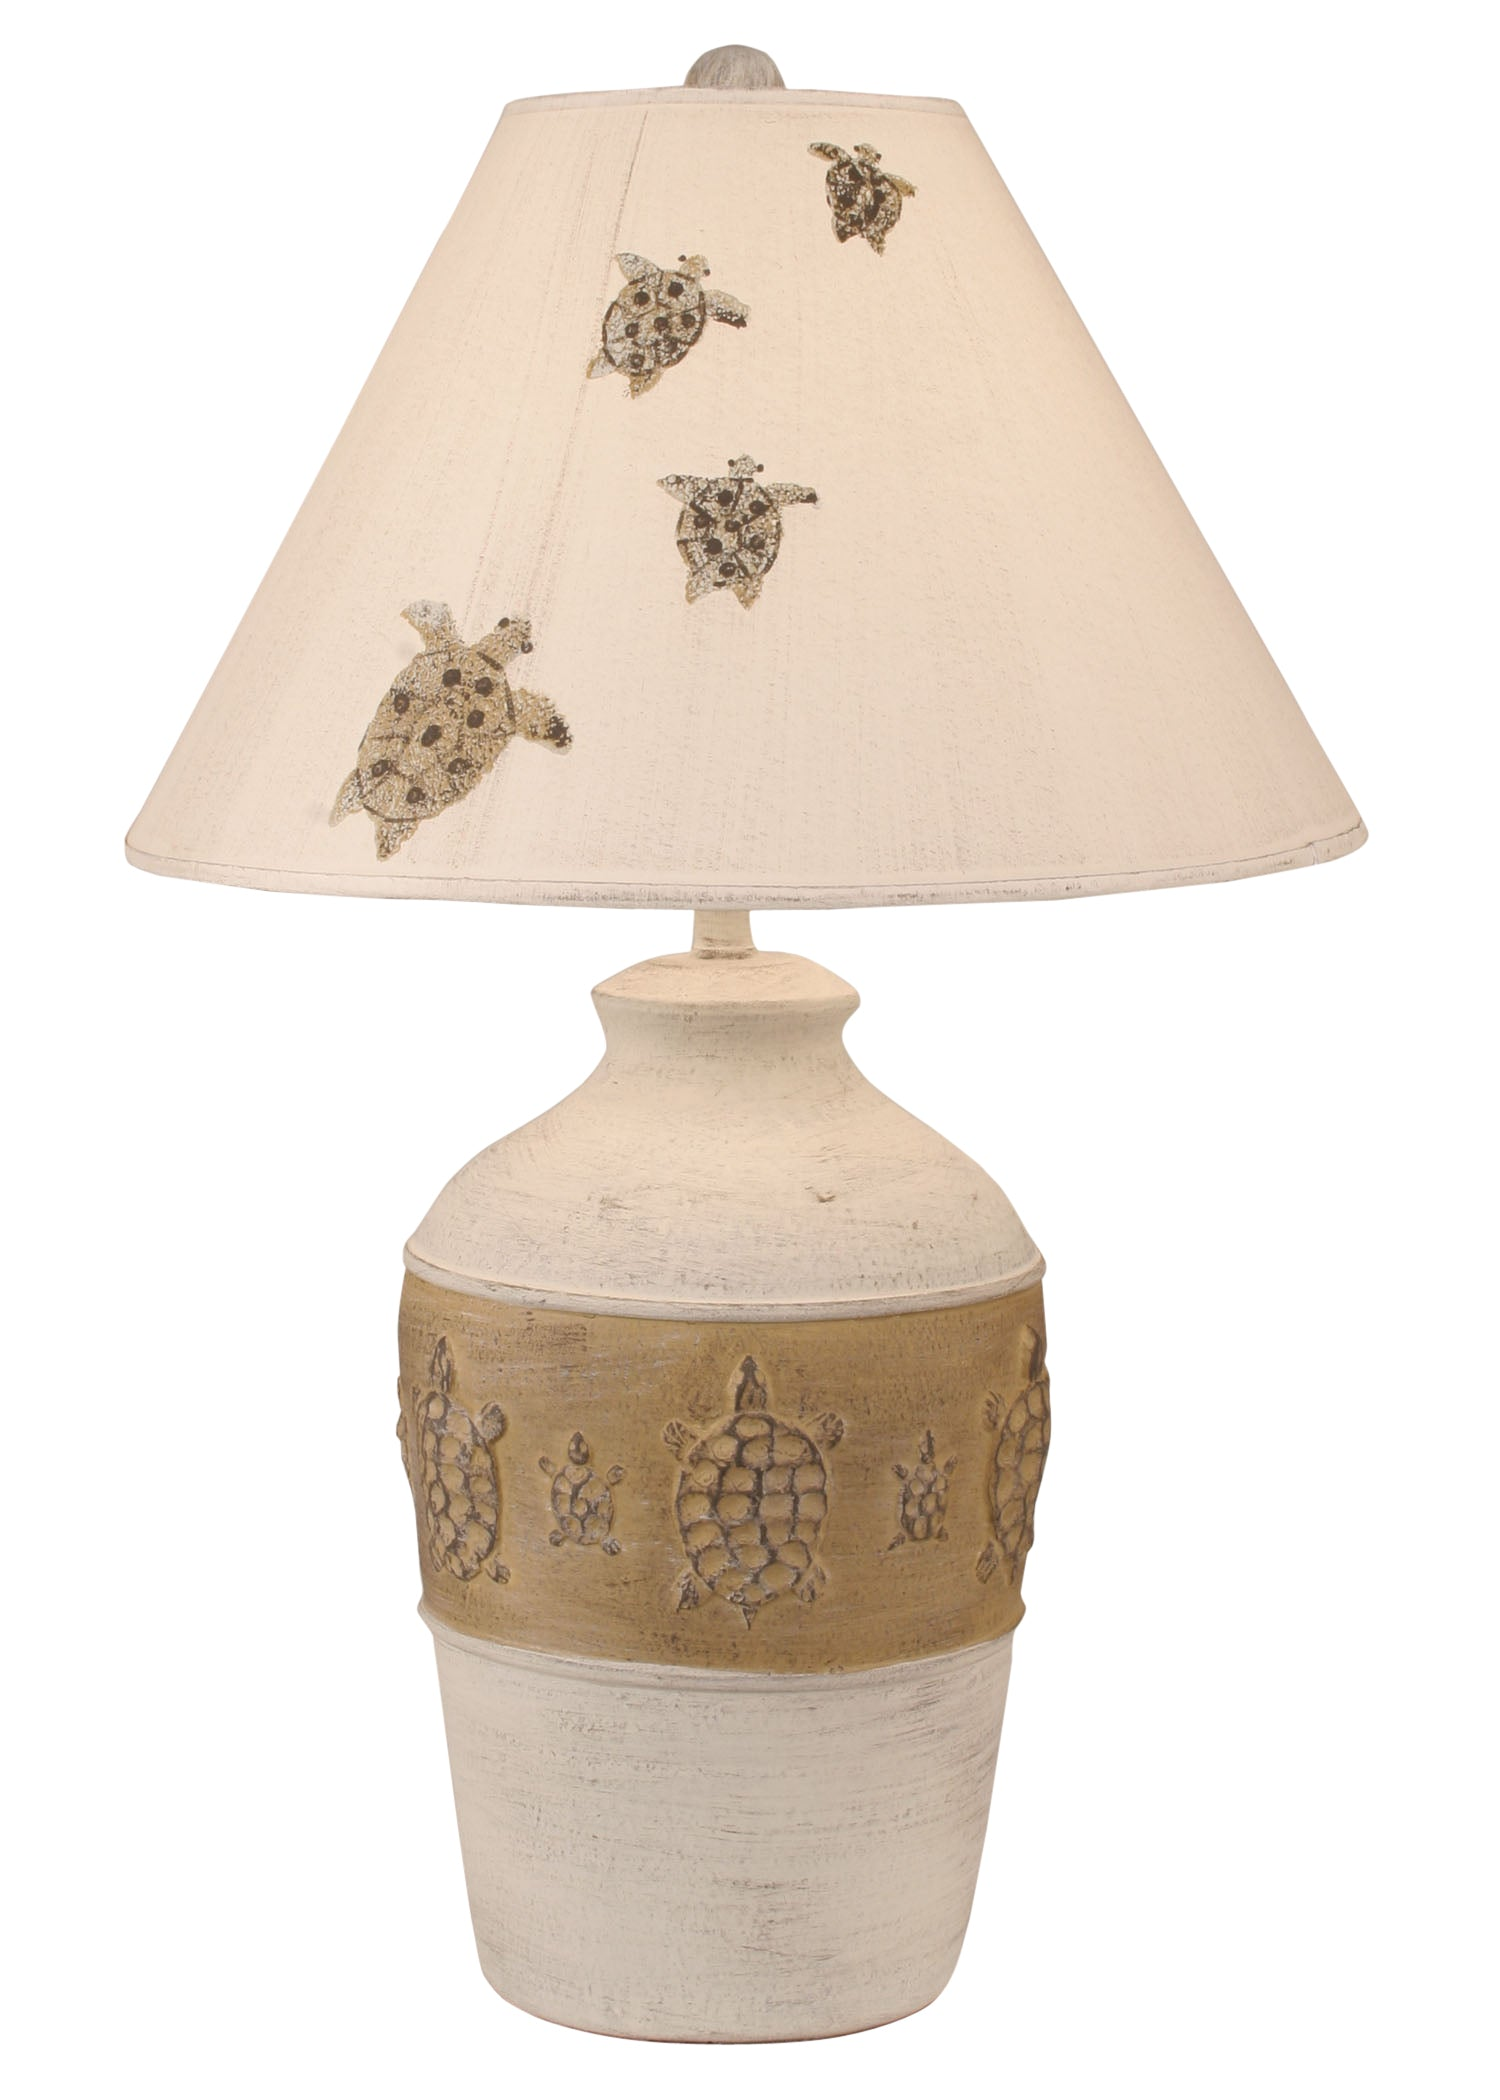 Cottage/Golden Brown Band of Turtles Table Lamp - Coast Lamp Shop